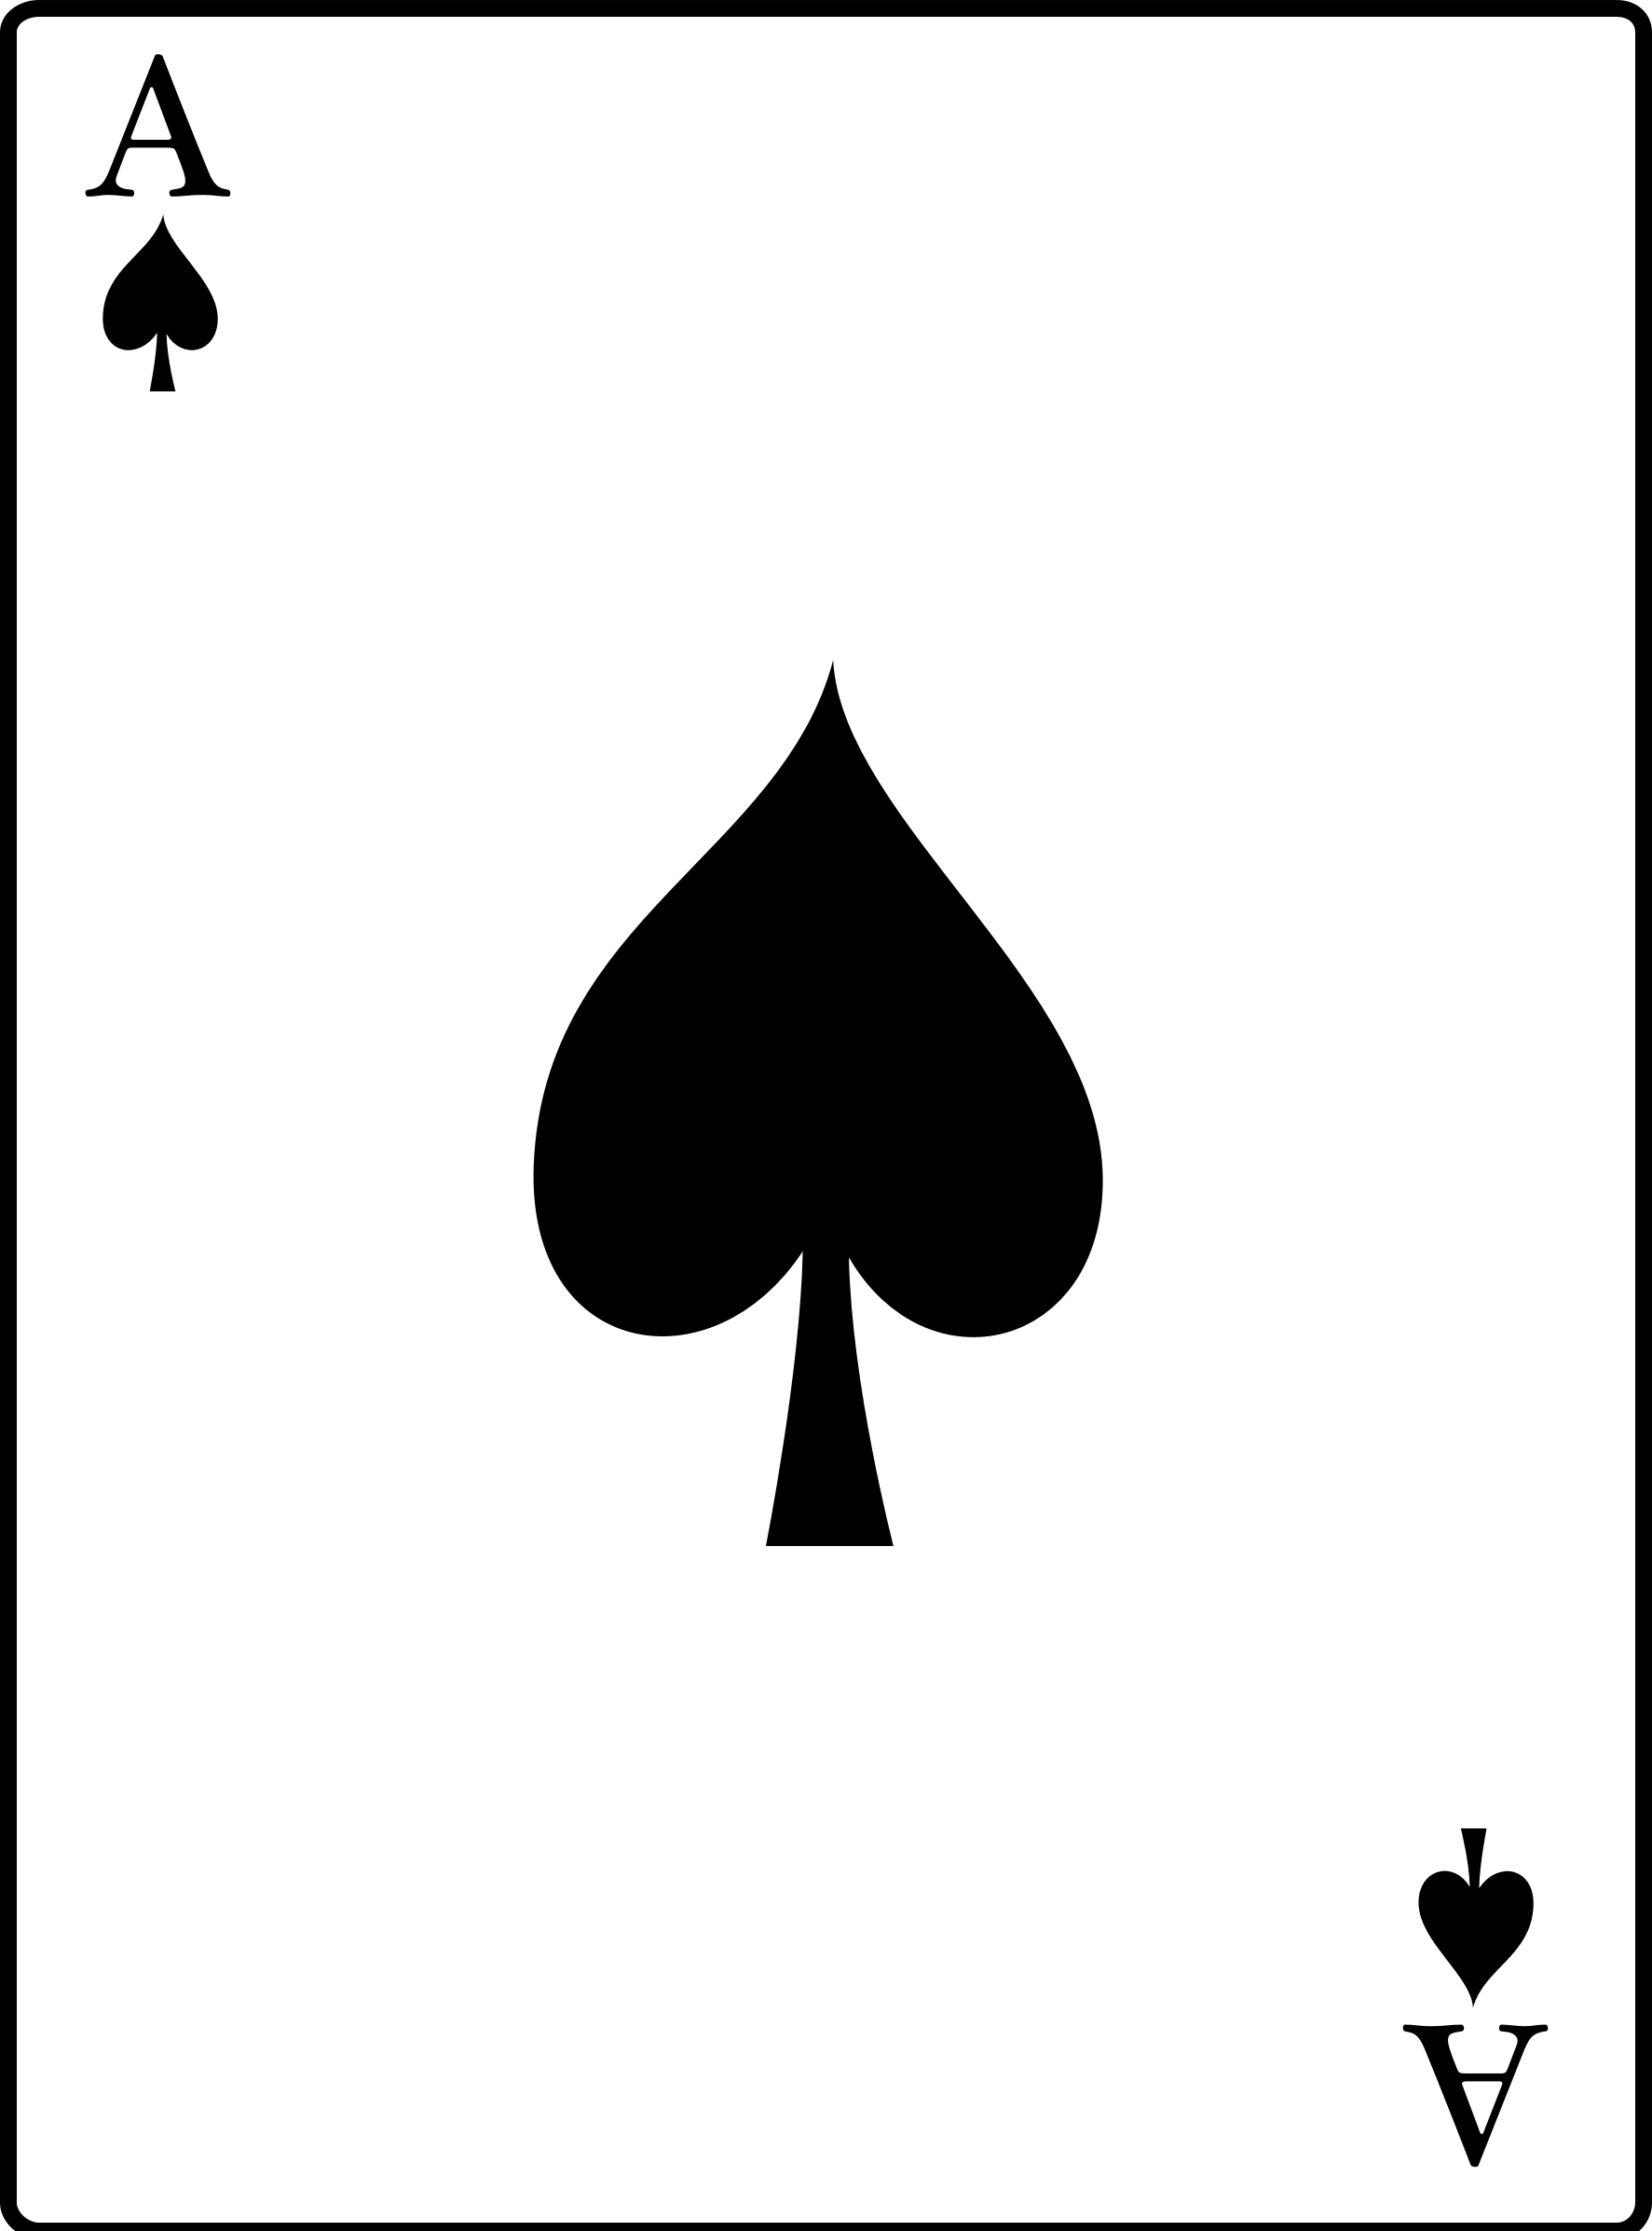 Ace of Spades by casino